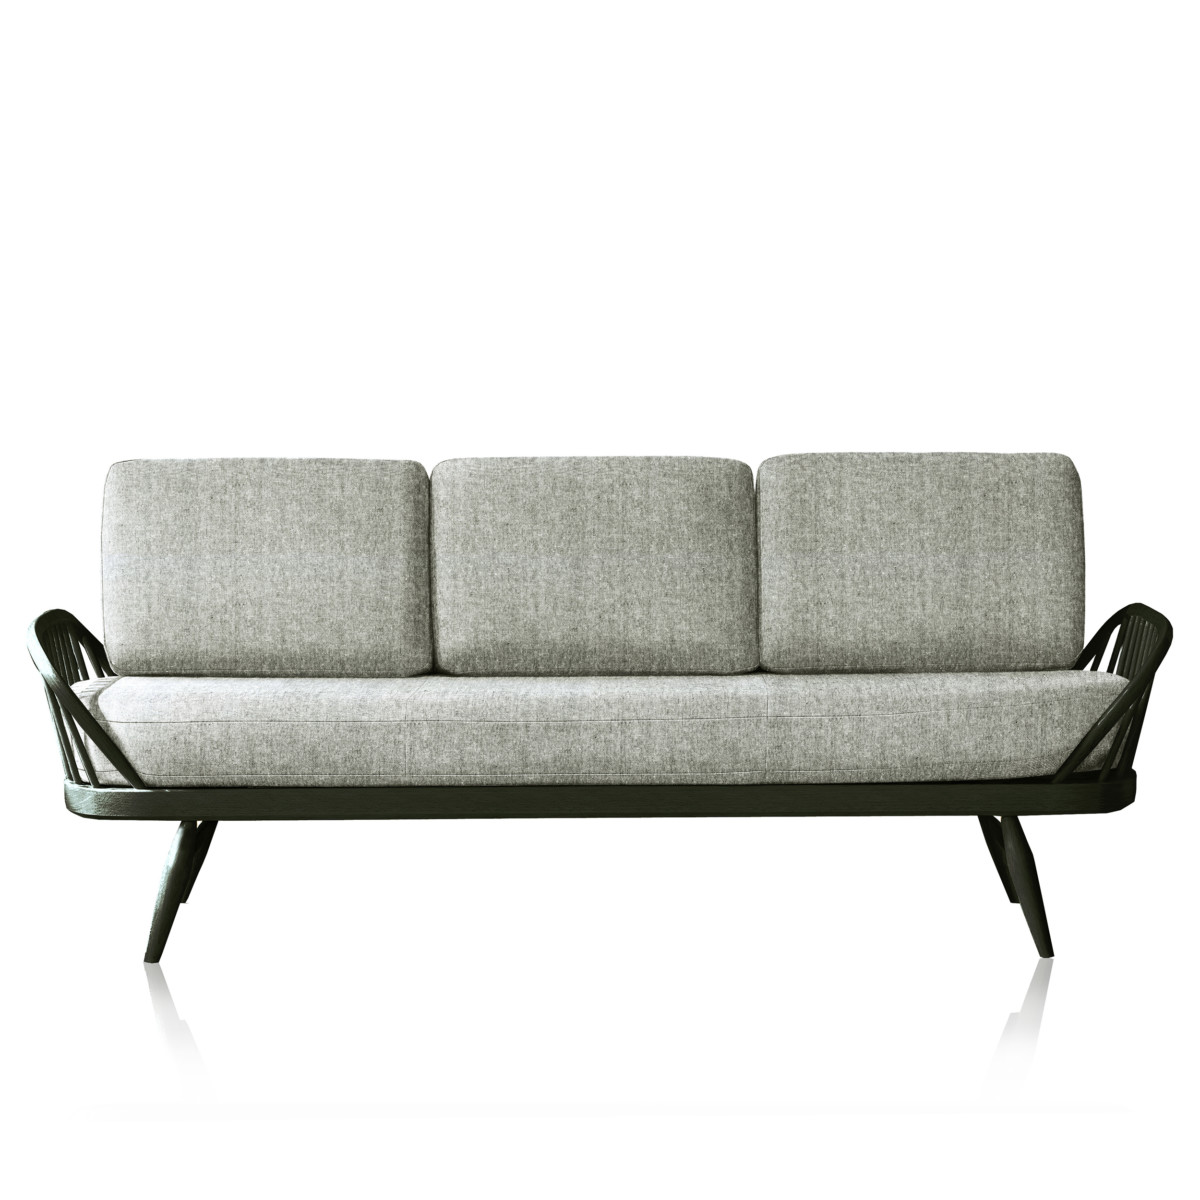 ercol sofa studio couch im design sortiment midmodern. Black Bedroom Furniture Sets. Home Design Ideas